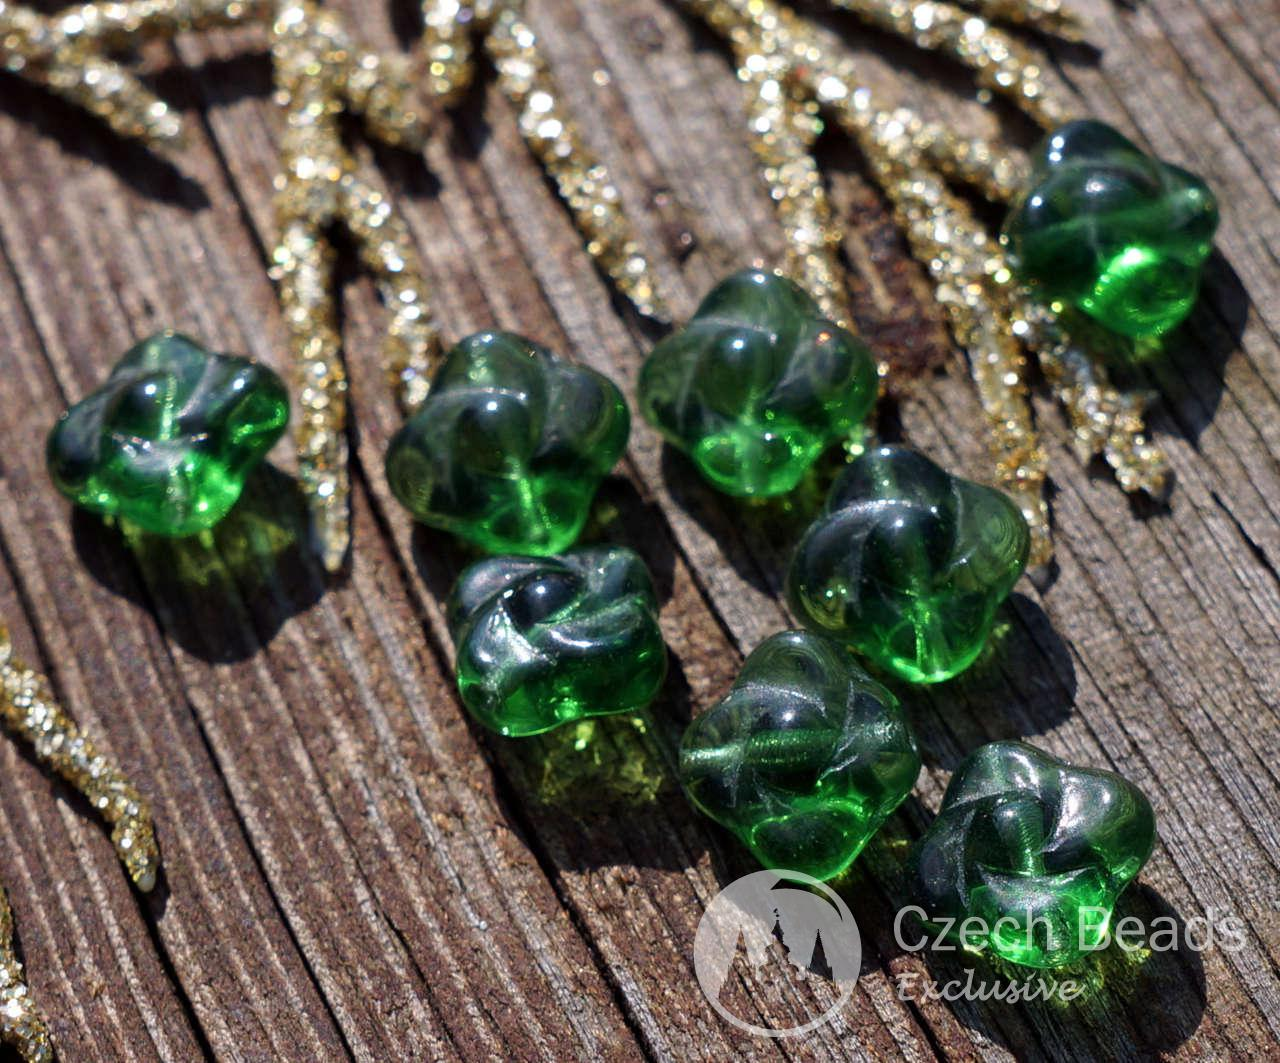 Clear Green Czech Glass Flower Beads Flat Czech Flower Beads Green Czech Flower Beads Glass Flower Bead Bohemian Carved Flower Bead 8mm 20pc for $2.27 from Czech Beads Exclusive